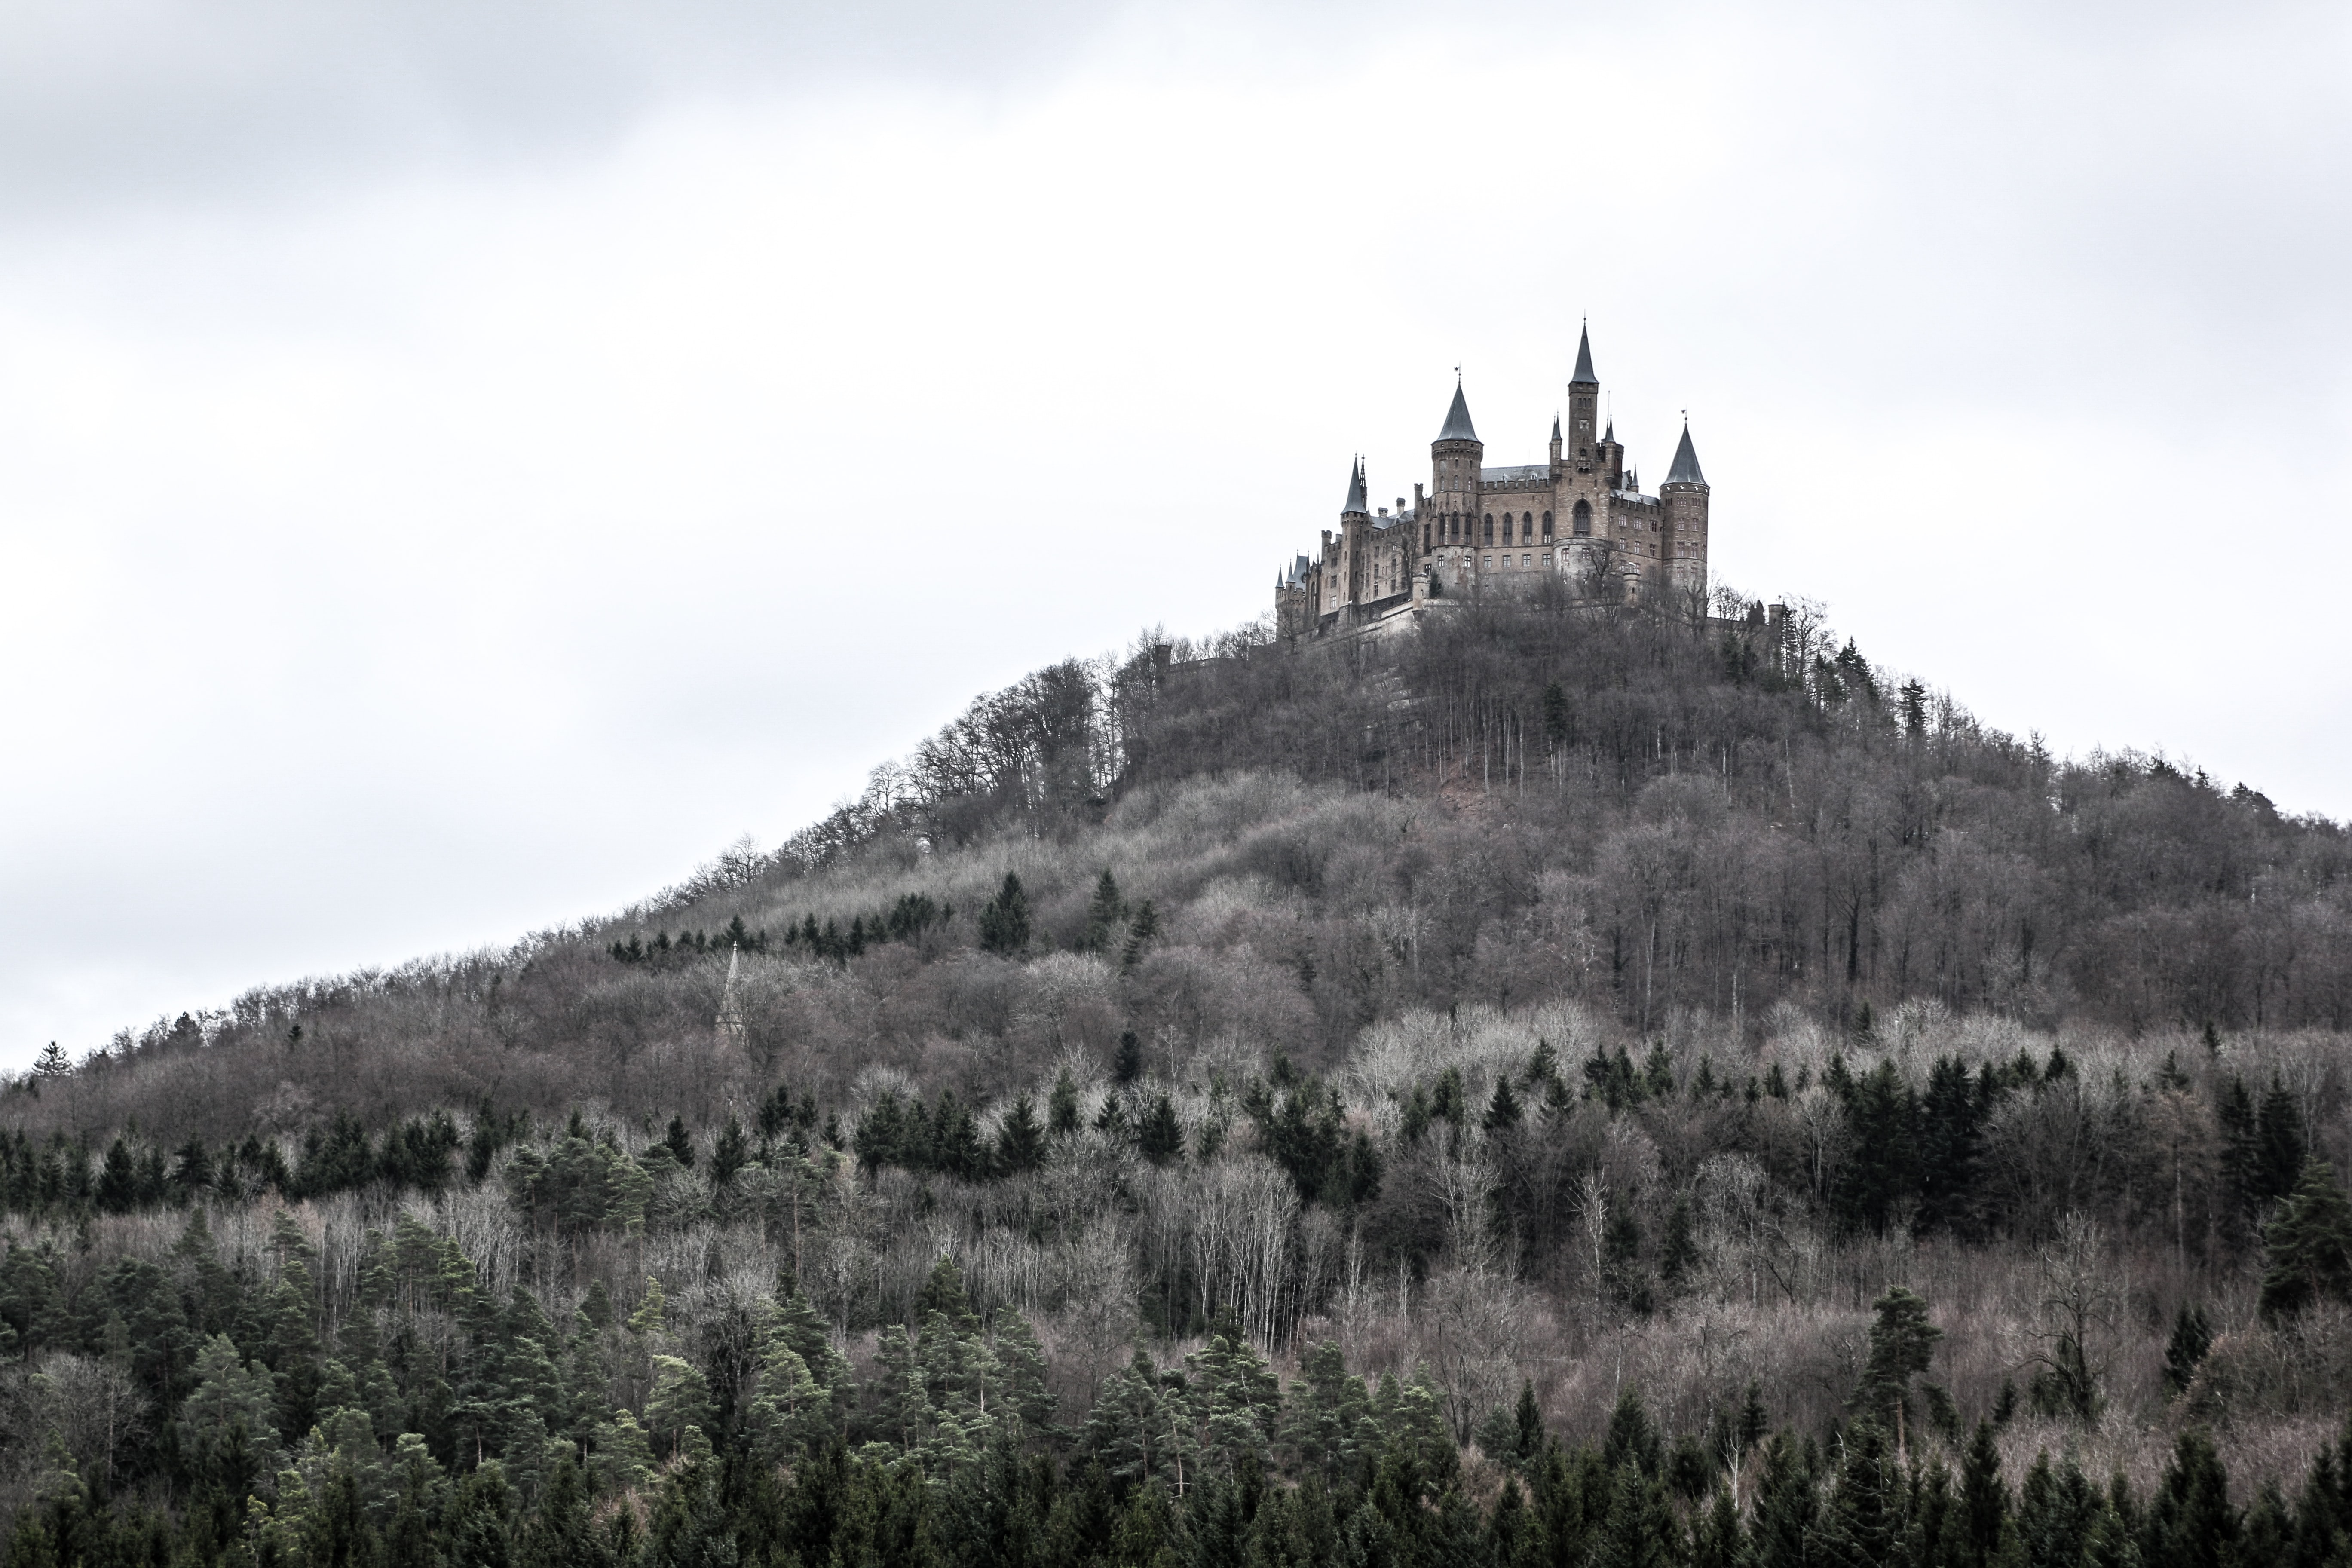 photo of castle on hill